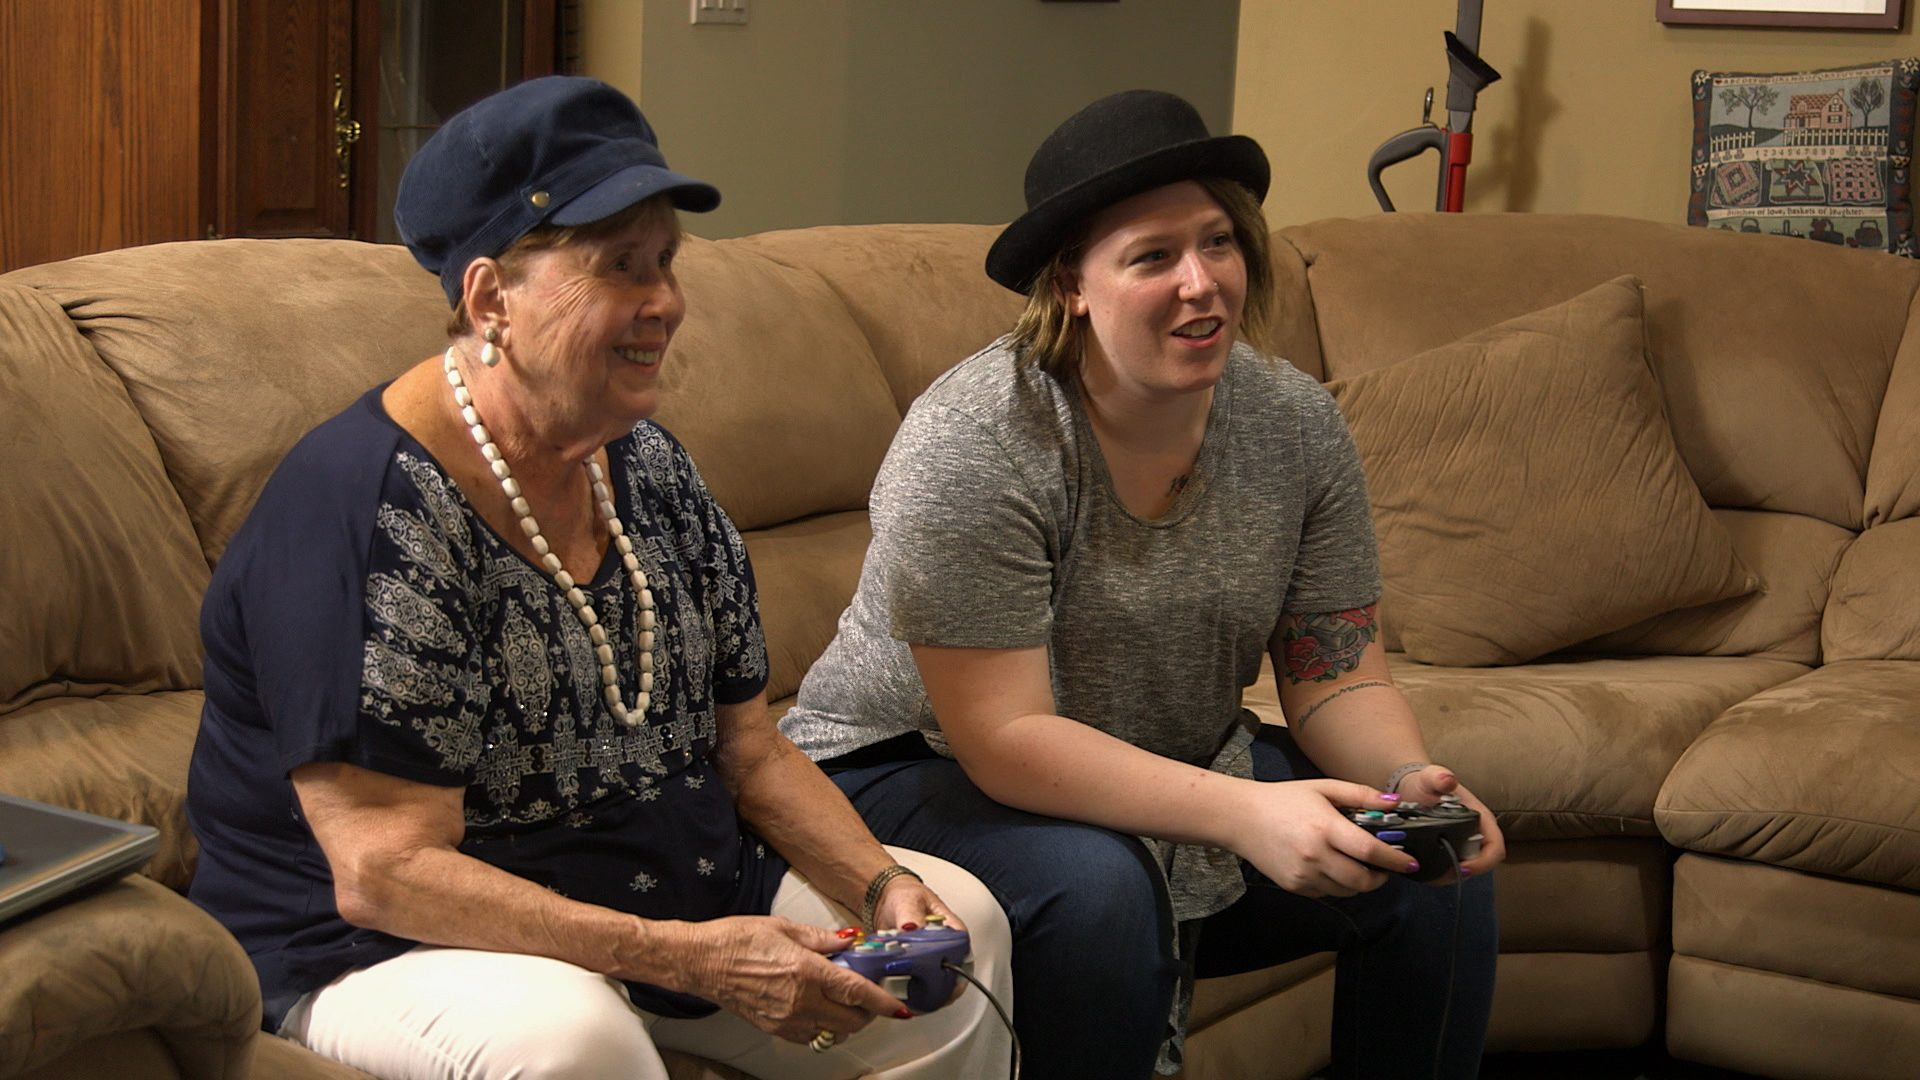 Chelsea, Grandma, Playing Video Games, Happily Ever Avatar, Stage 13 Original, stage13network